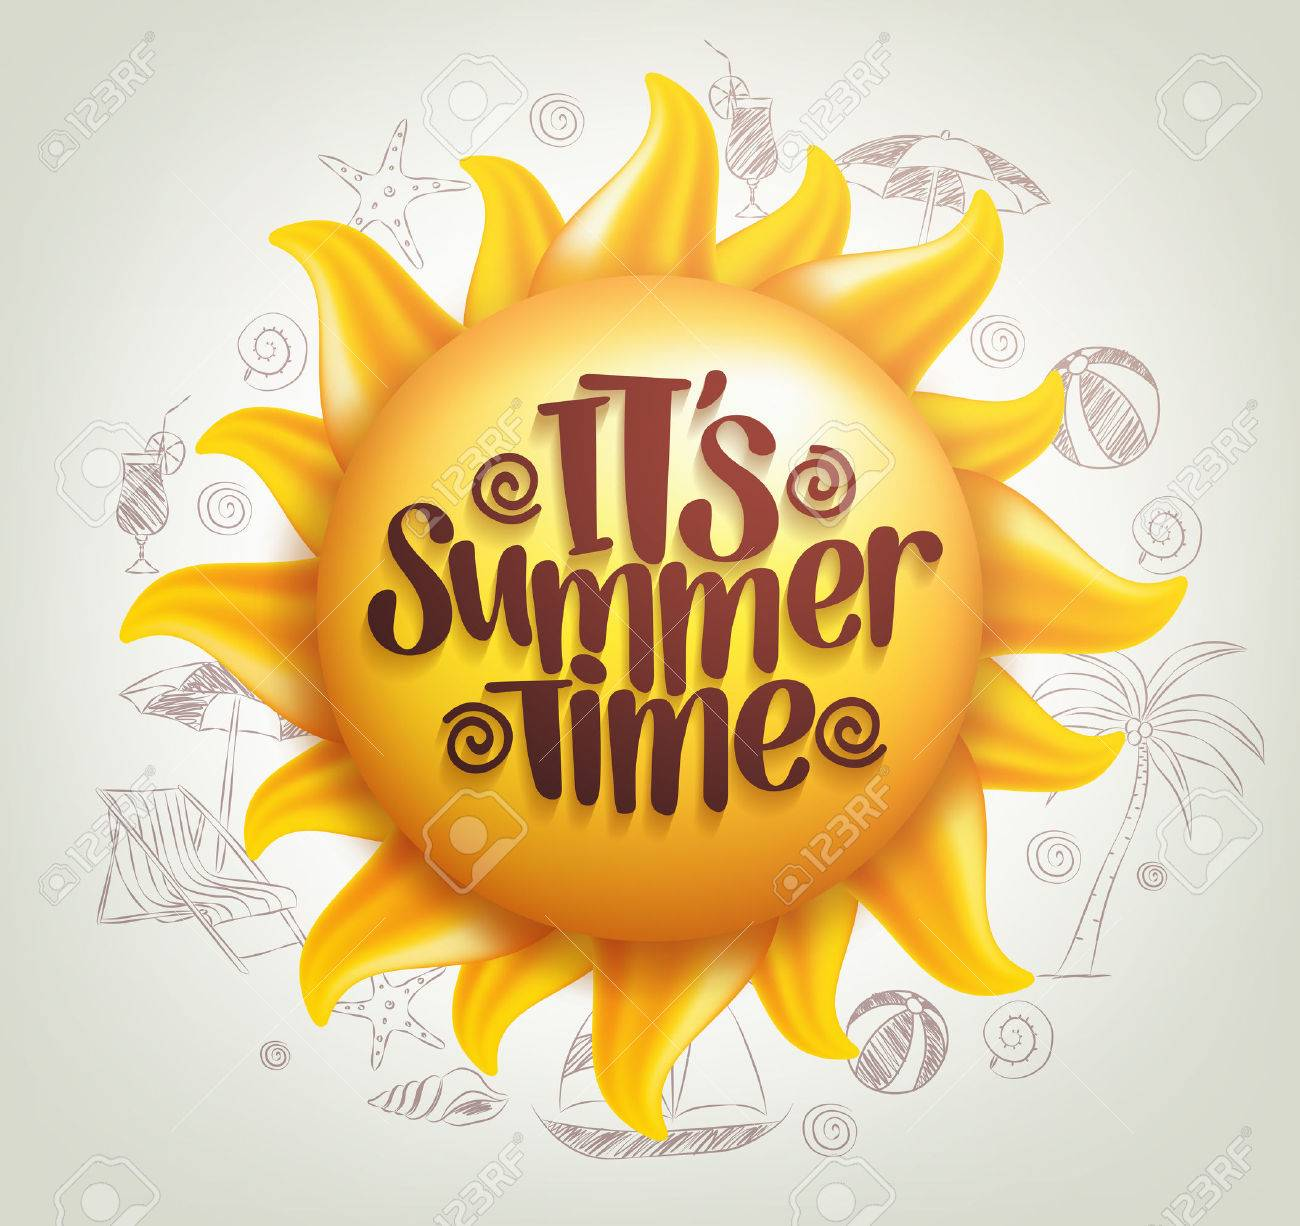 3D Realistic Sun Vector with Summer Time Title in a Background with Hand Drawing Summer Elements. Vector Illustration - 52730541